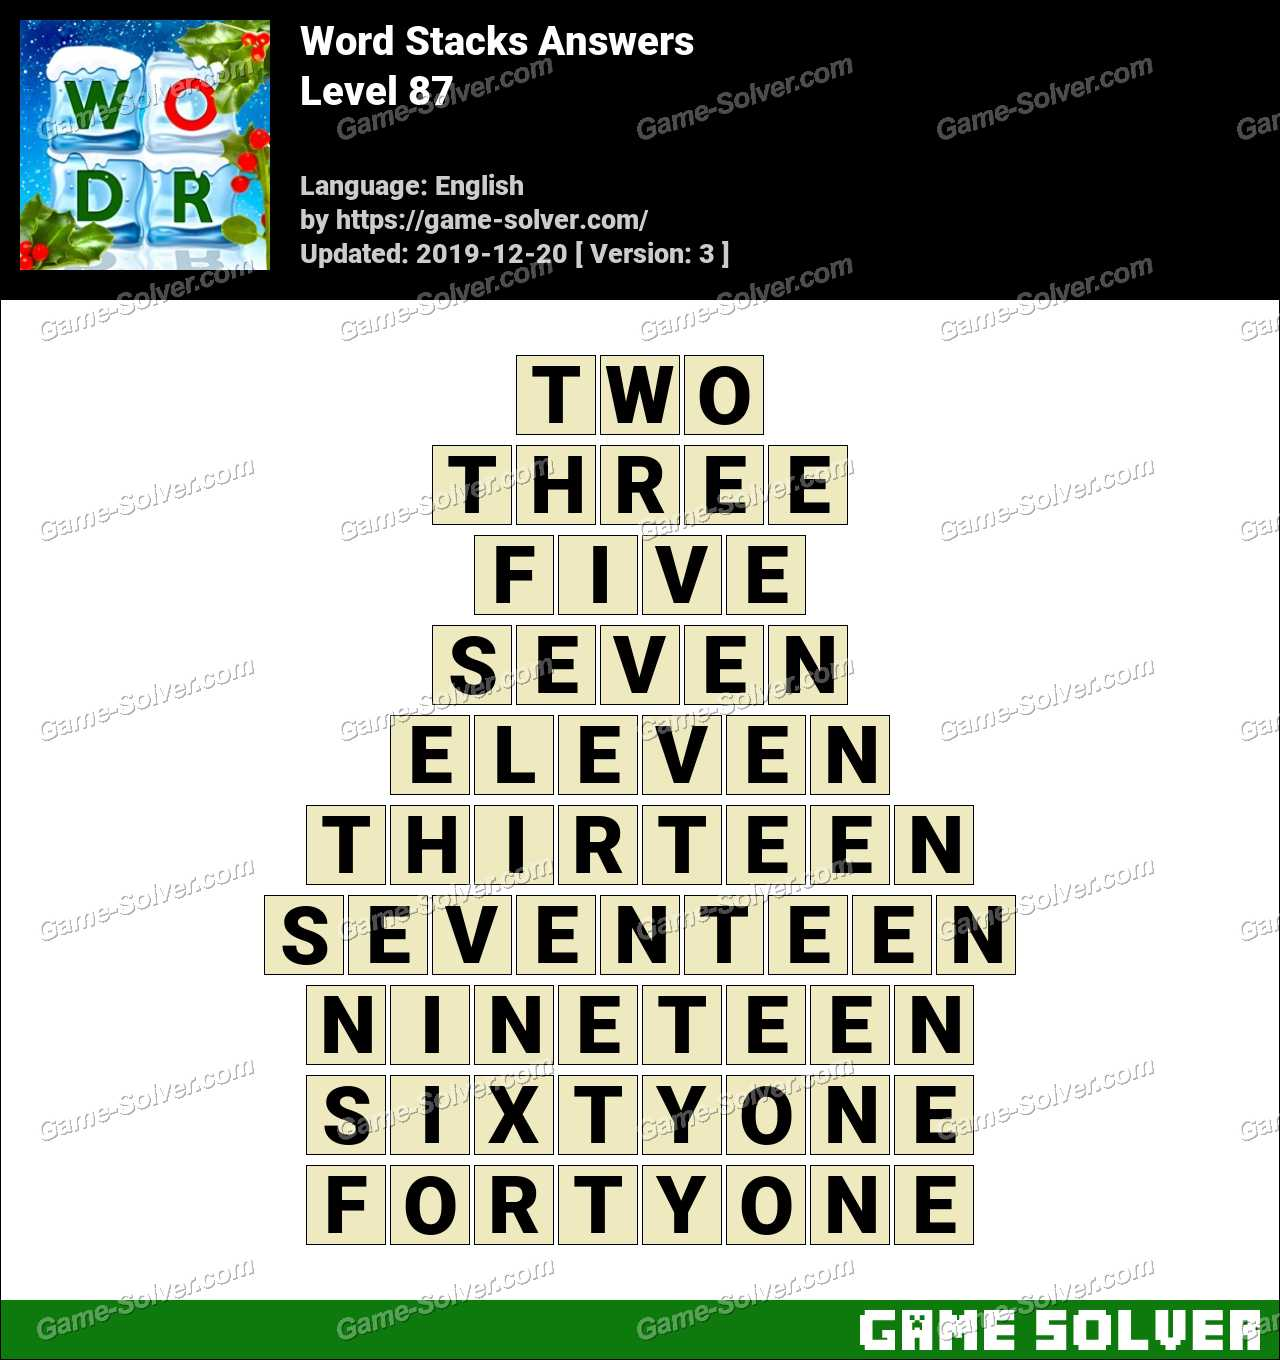 Word Stacks Level 87 Answers